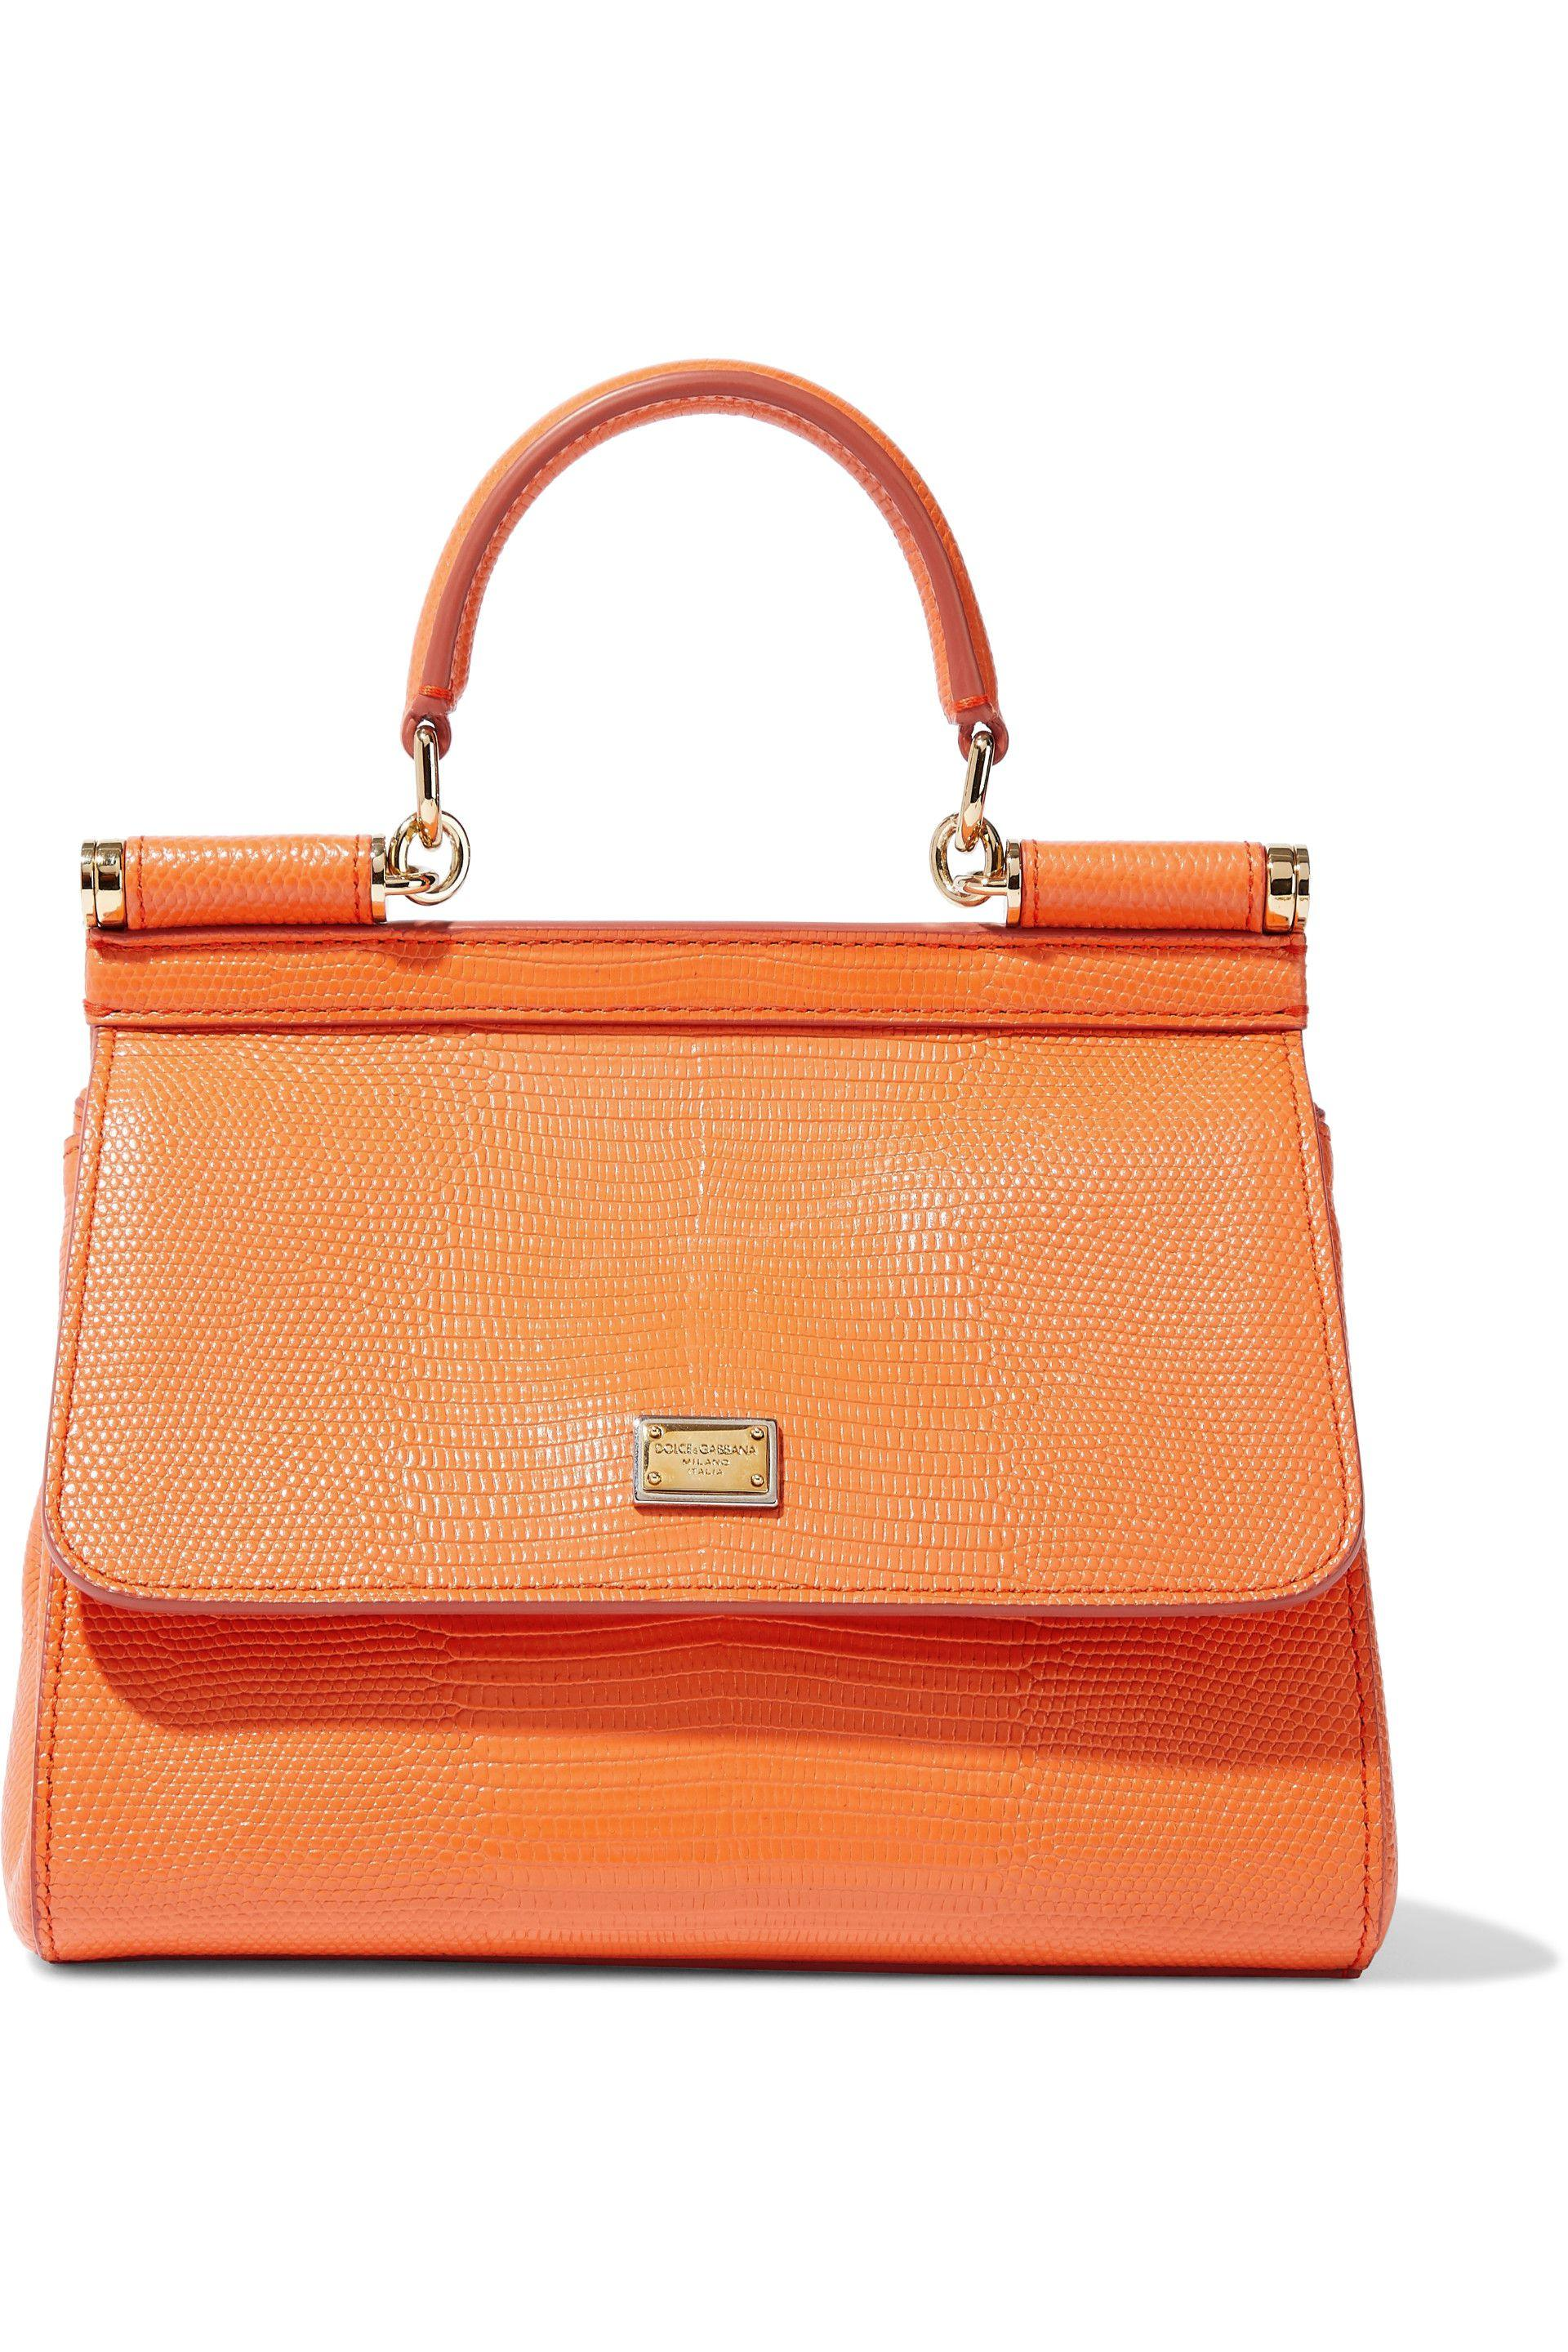 ee6d1bc3fdef Dolce   Gabbana. Women s Woman Sicily Lizard-effect Leather Shoulder Bag  Orange